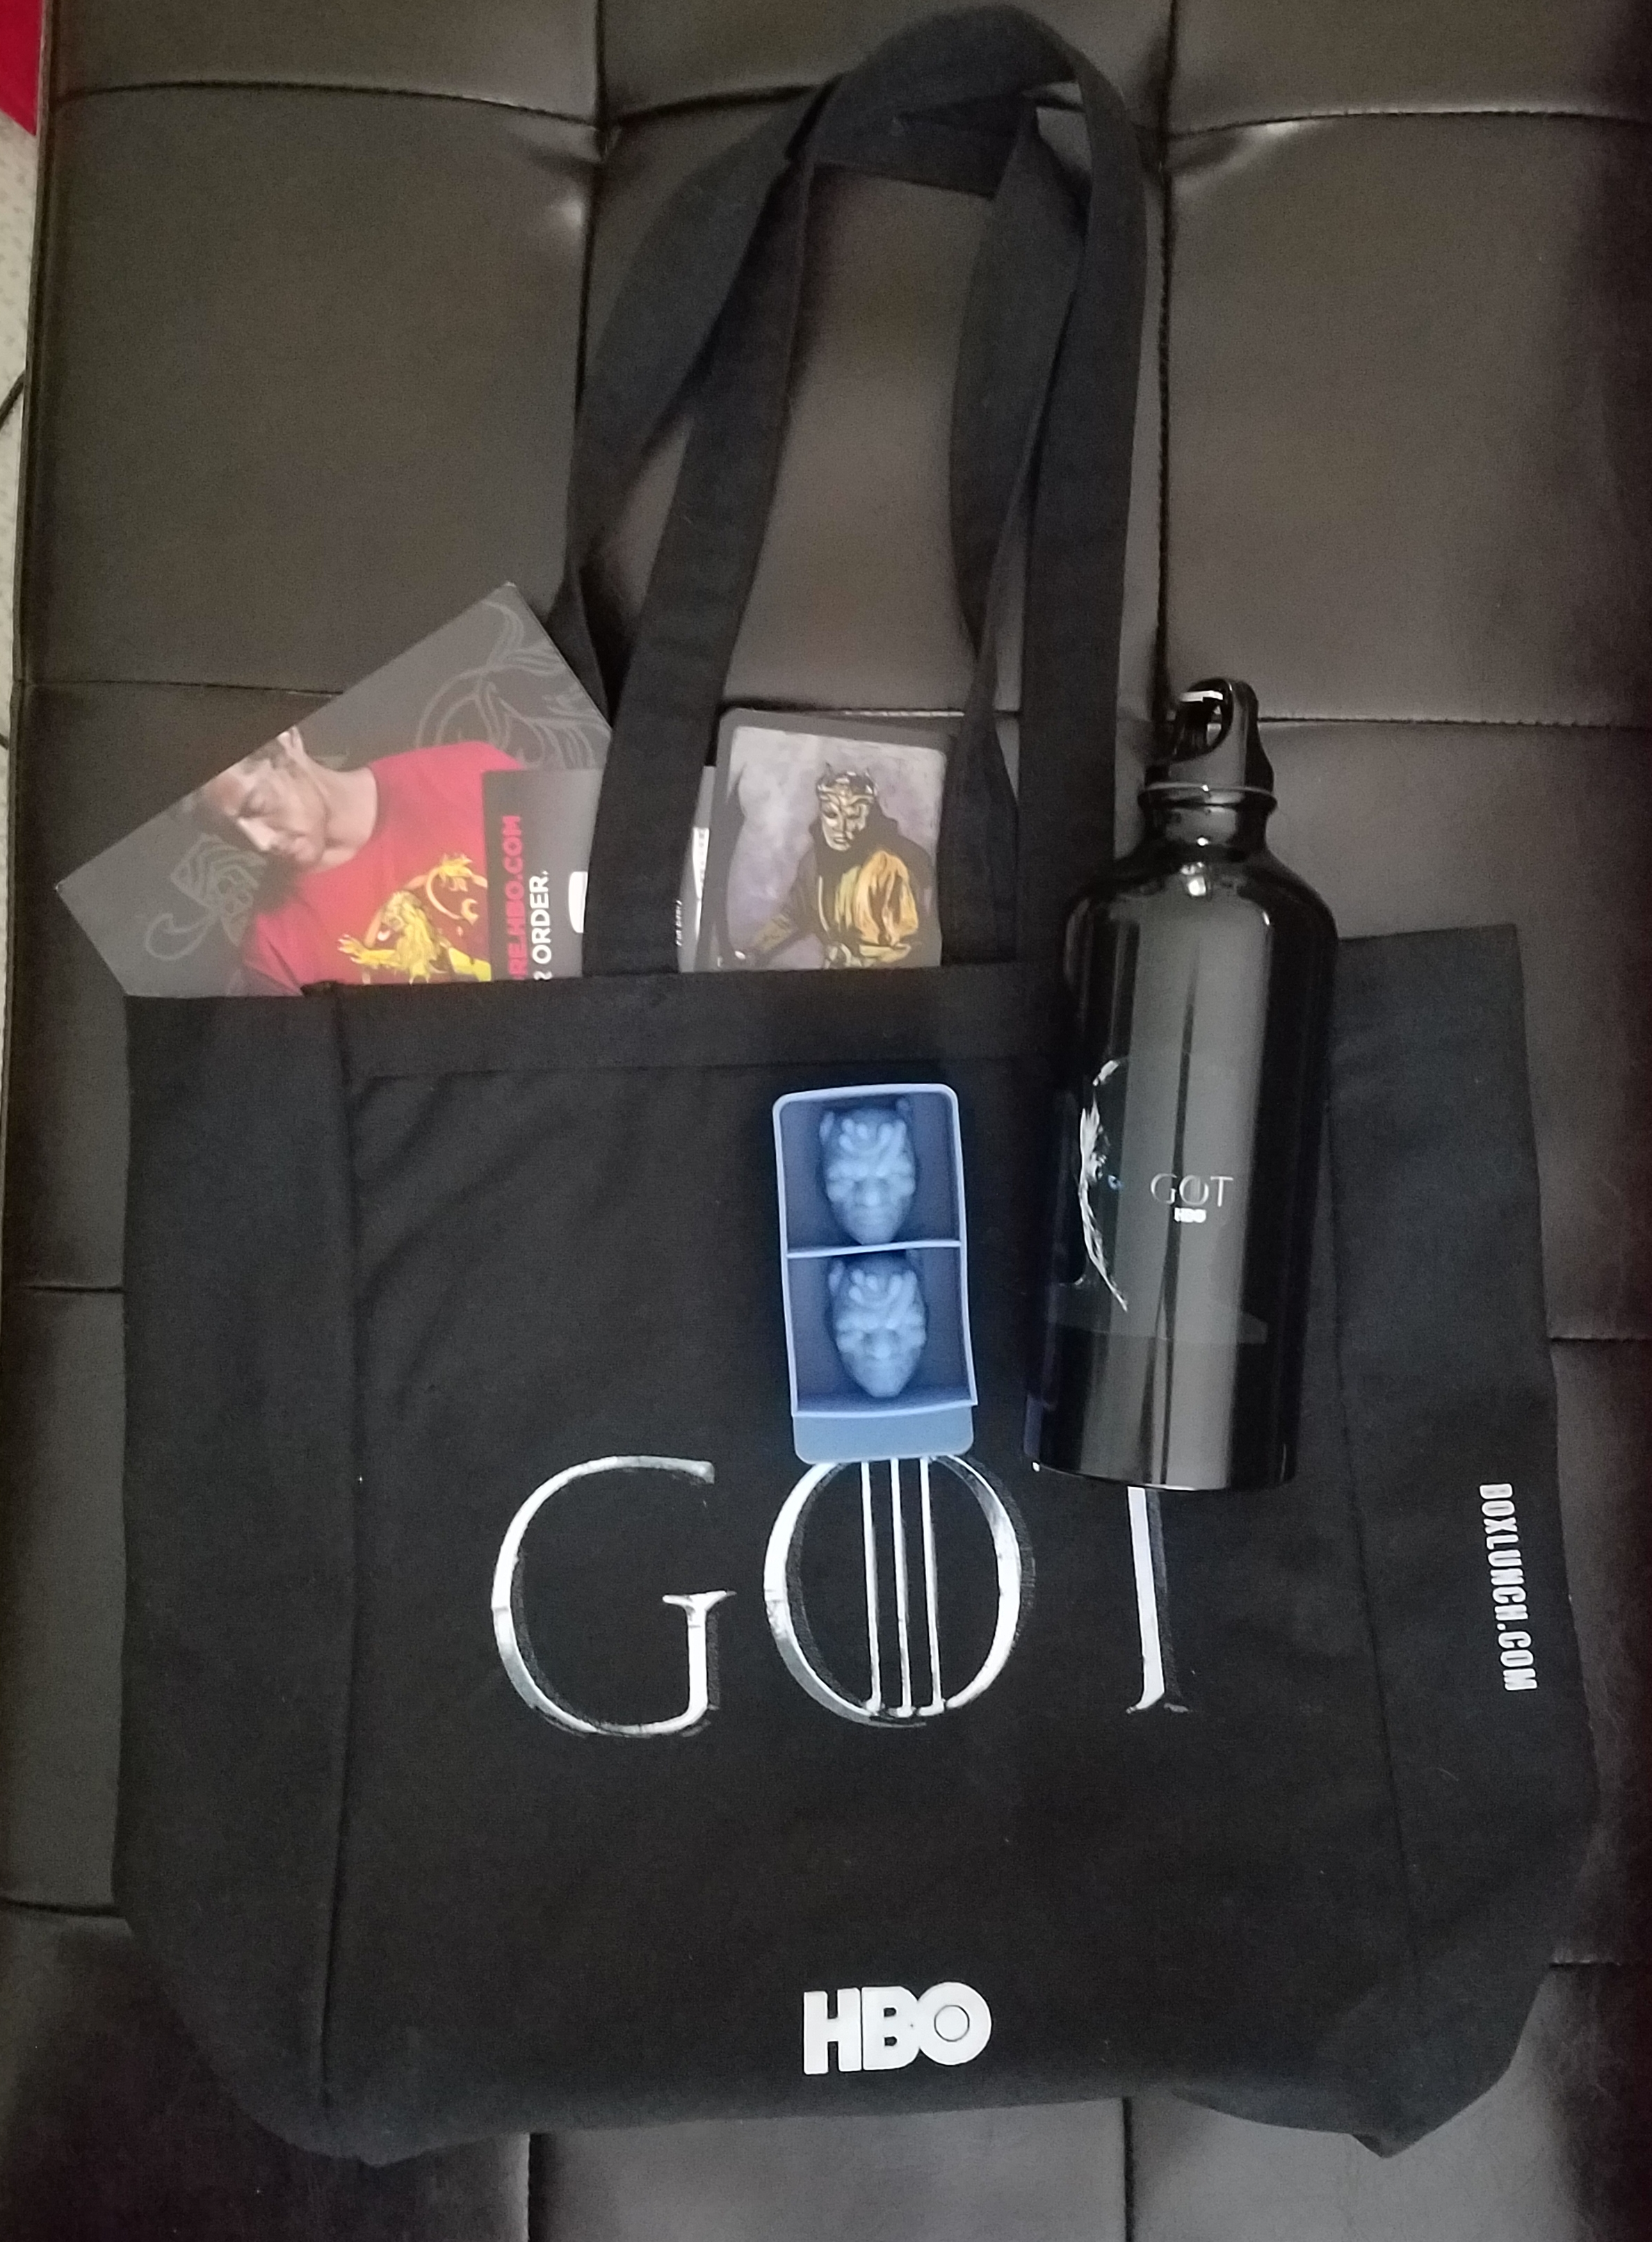 John A - SDCC 2017 Hall H Game of Thrones Bag